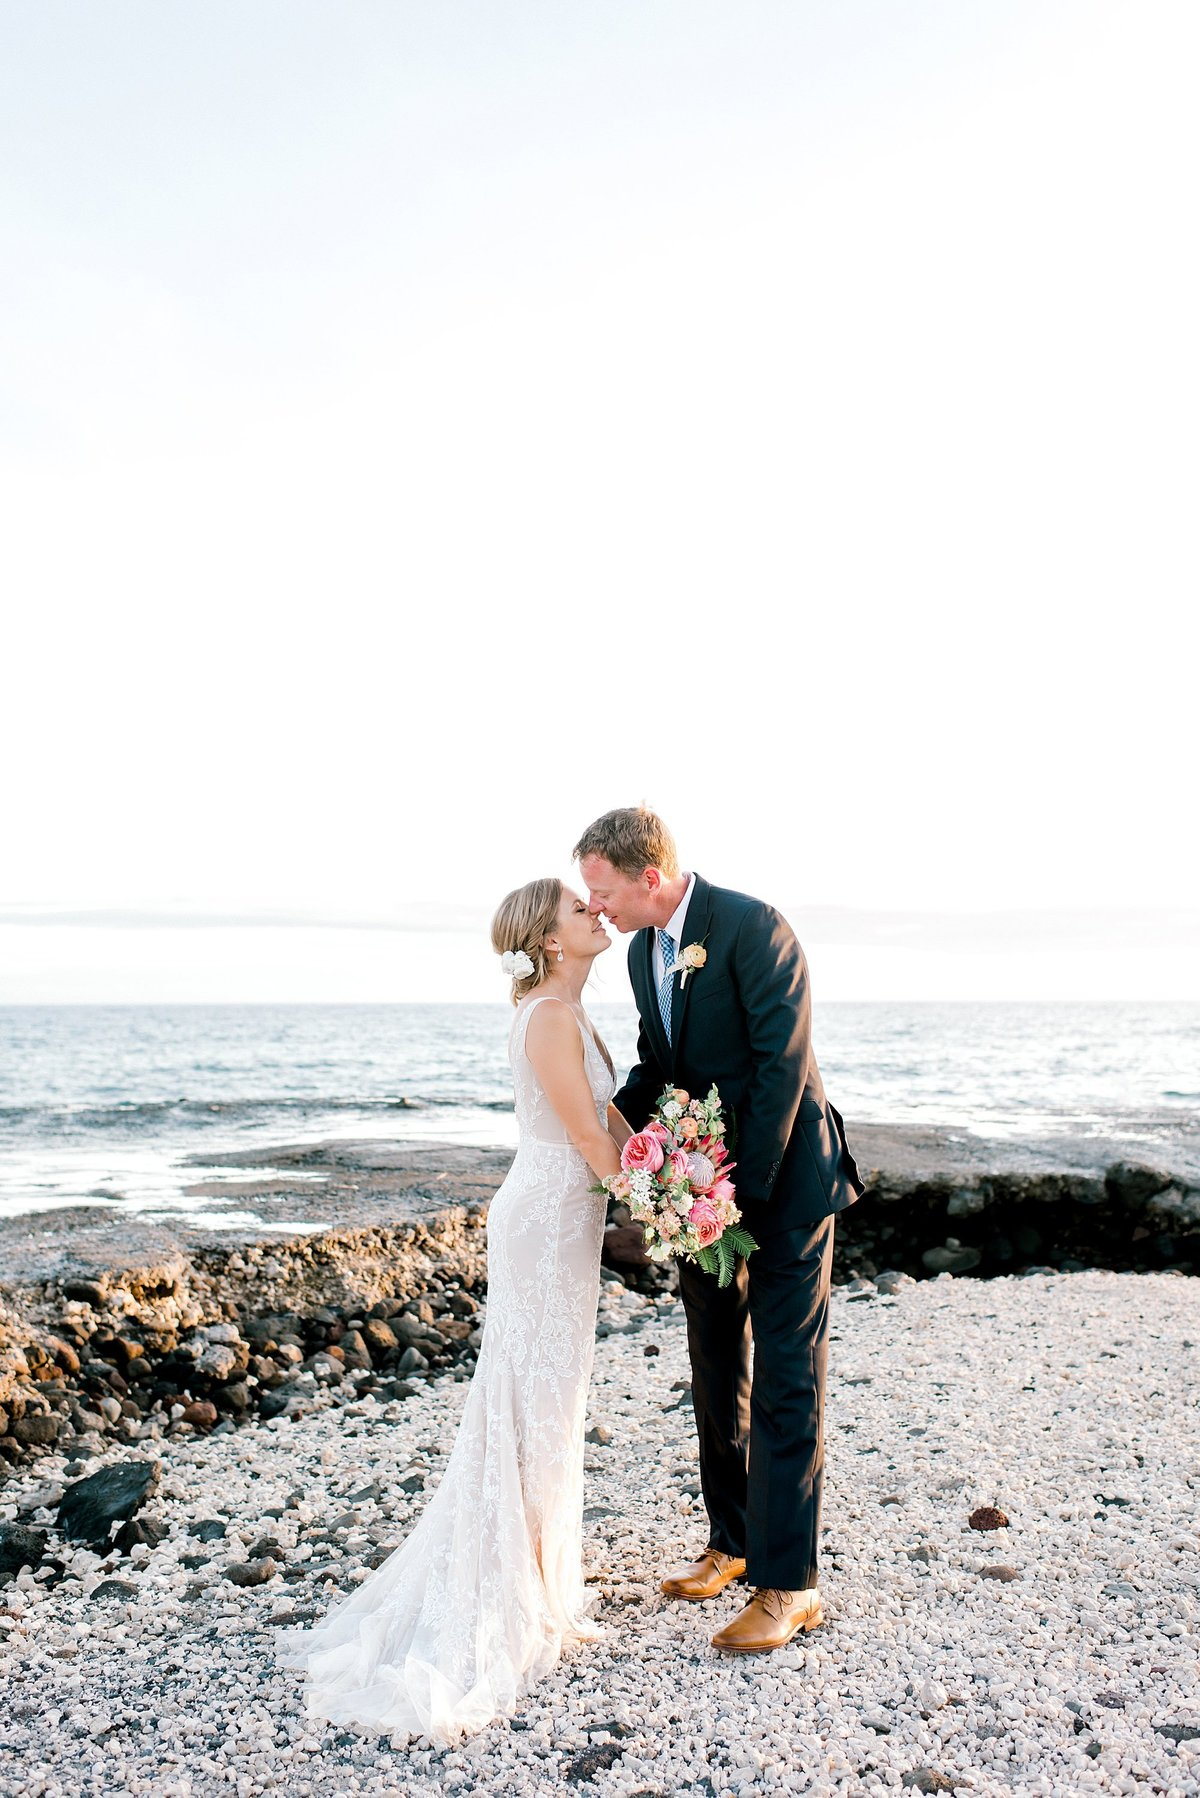 jenny_vargas-photography-maui-wedding-photographer-maui-wedding-photography-maui-photographer-maui-photographers-maui-elopement-photographer-maui-elopement-maui-wedding-maui-engagement-photographer_0833